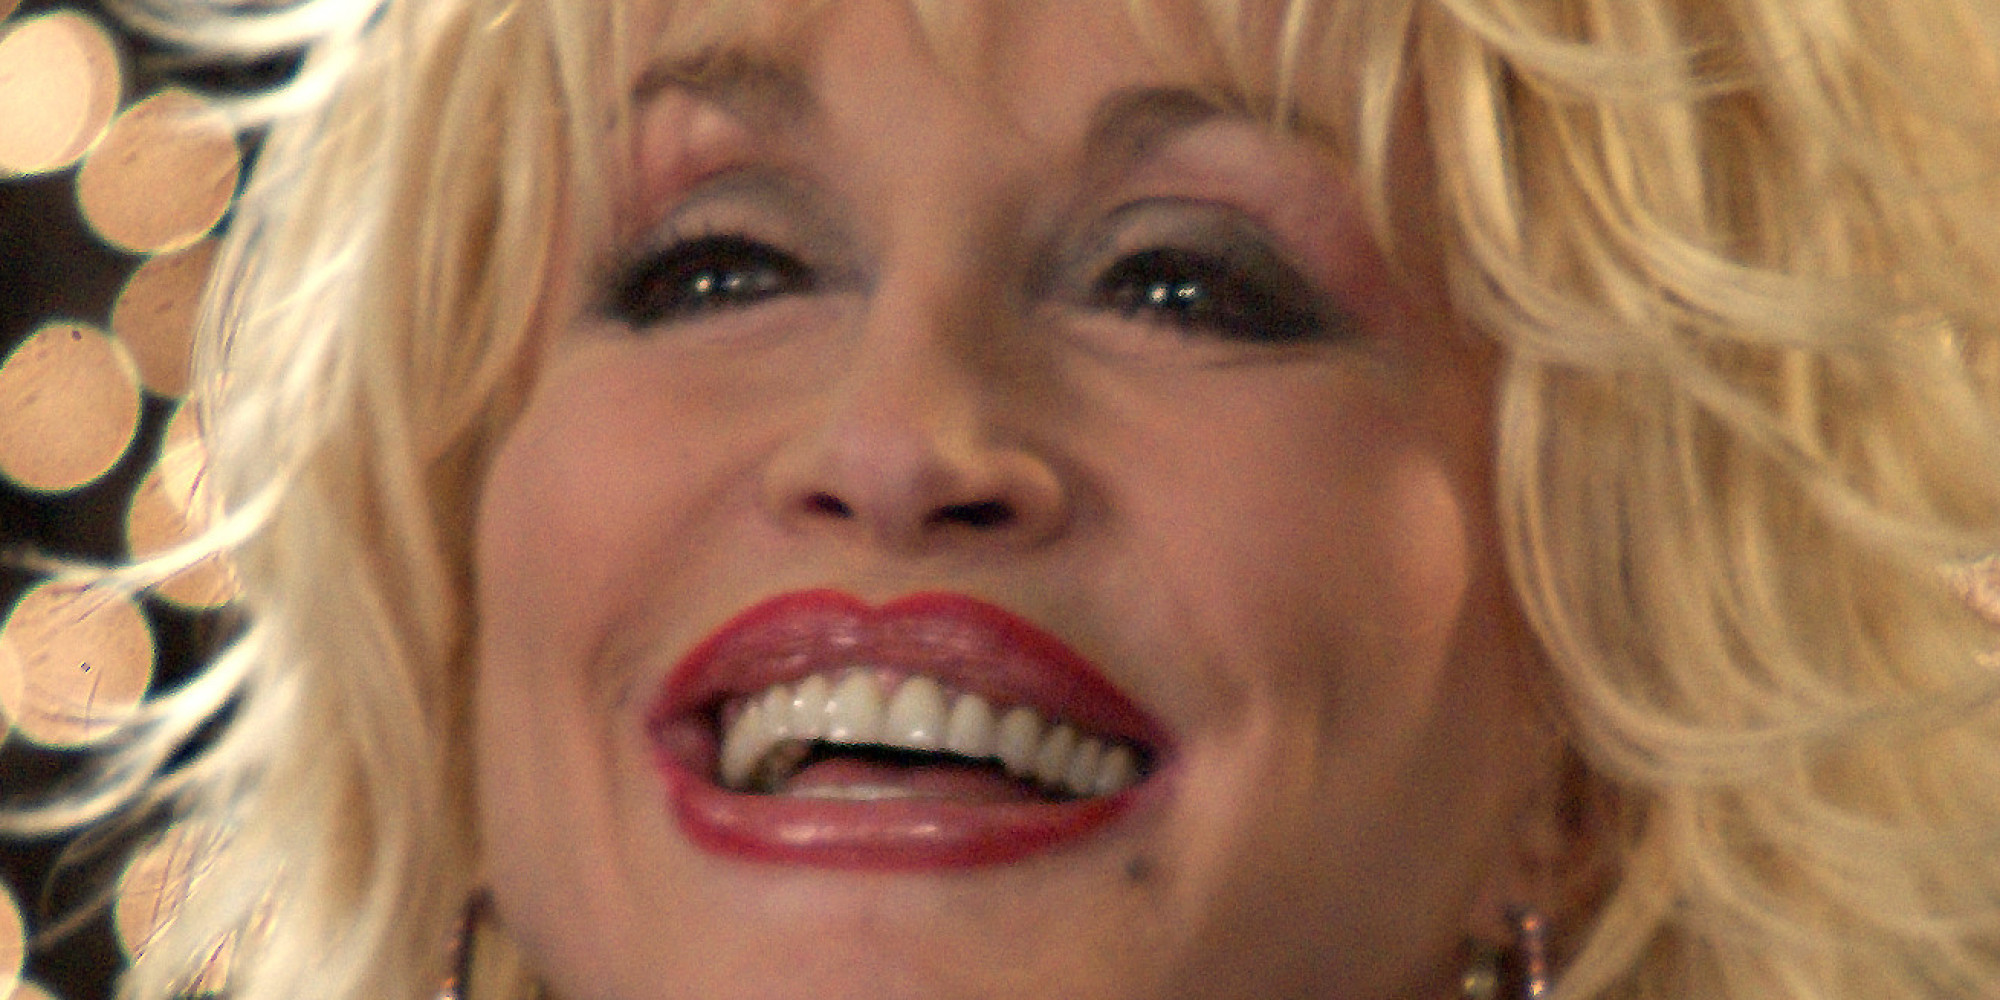 Dolly Parton: Dolly Parton Chastises Christians For 'Judging' LGBT